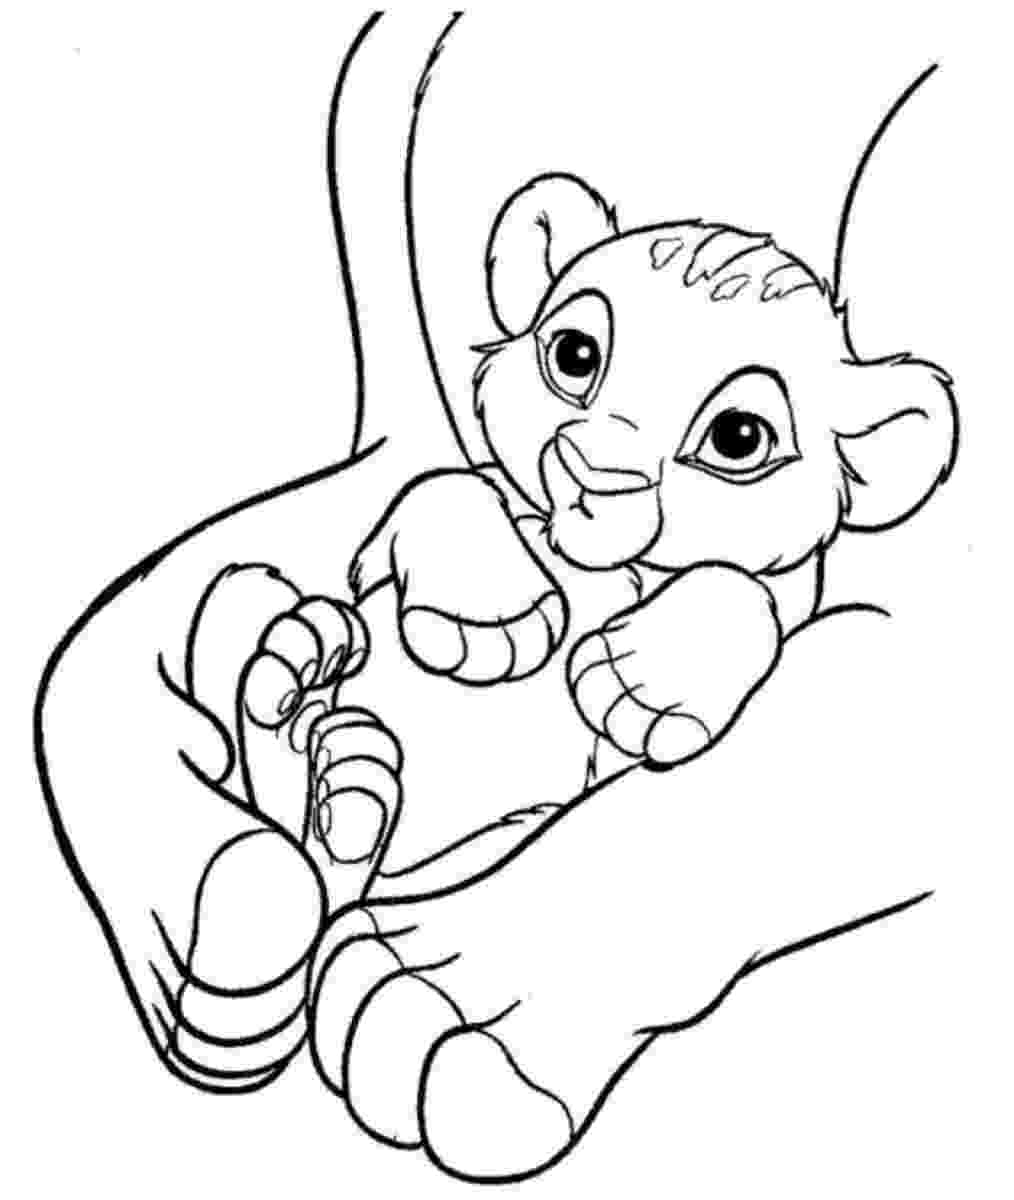 coloring book lion free printable simba coloring pages for kids coloring lion book